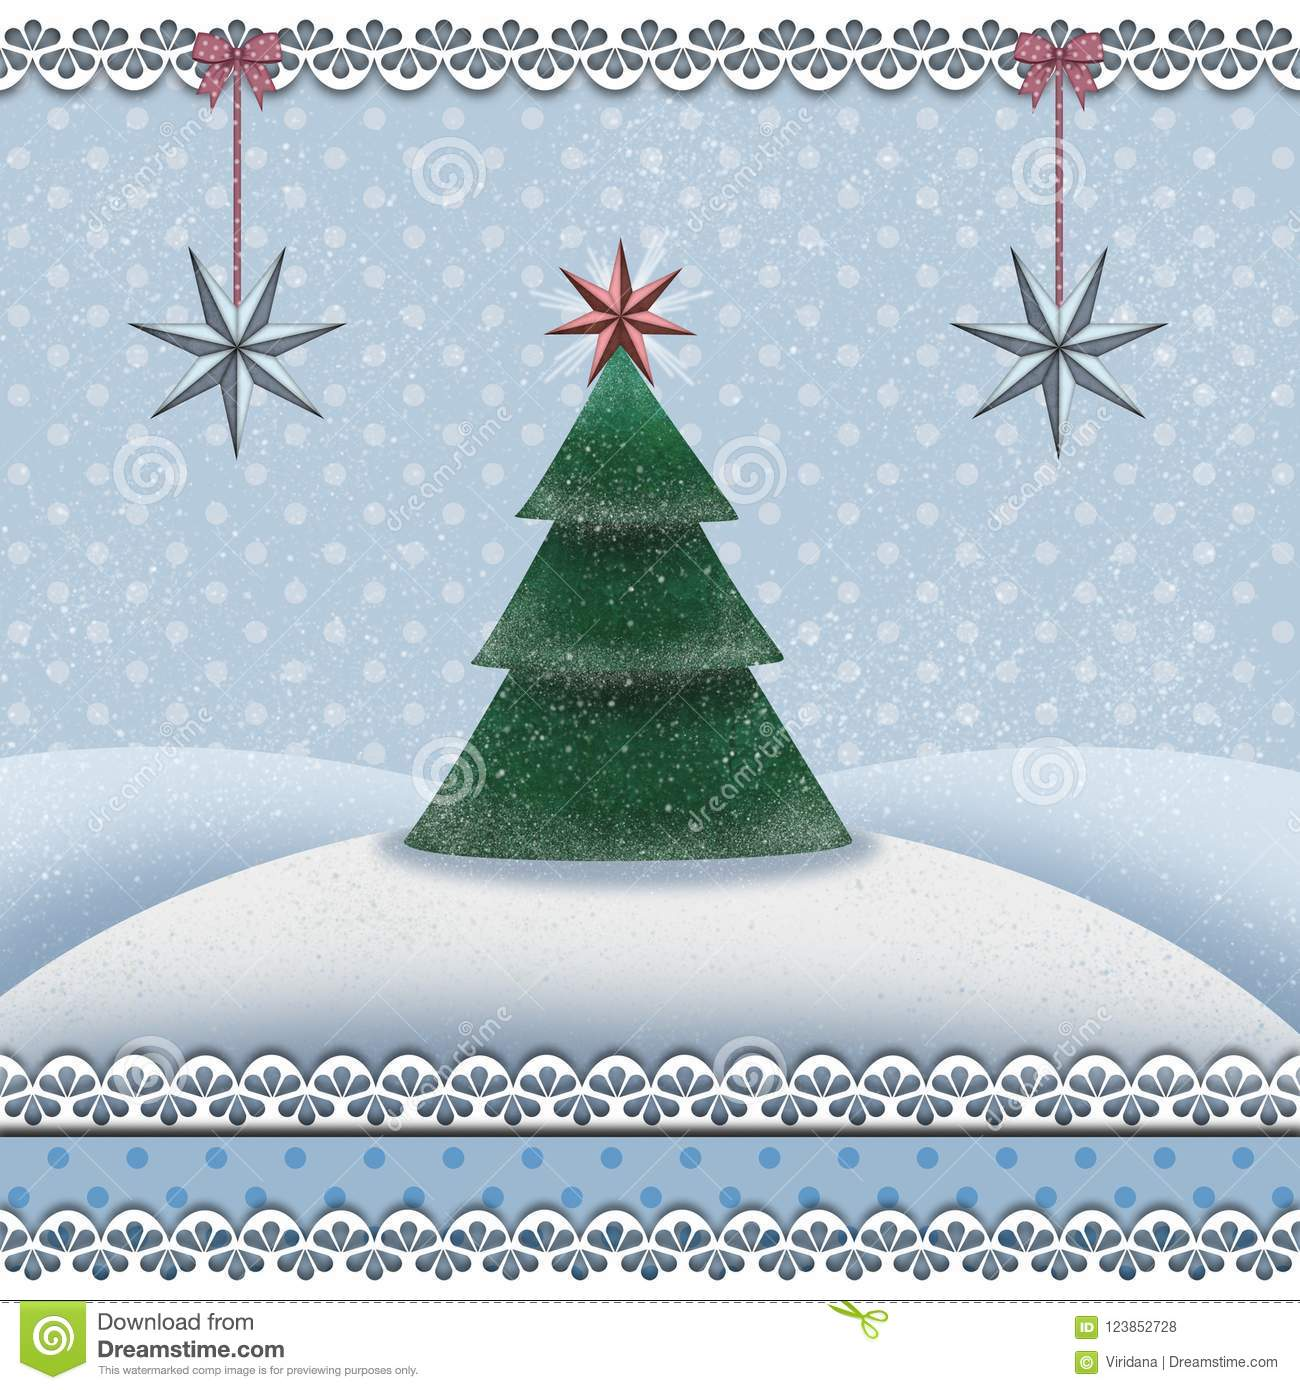 Christmas and new year card with a fir tree in a snowy landscape